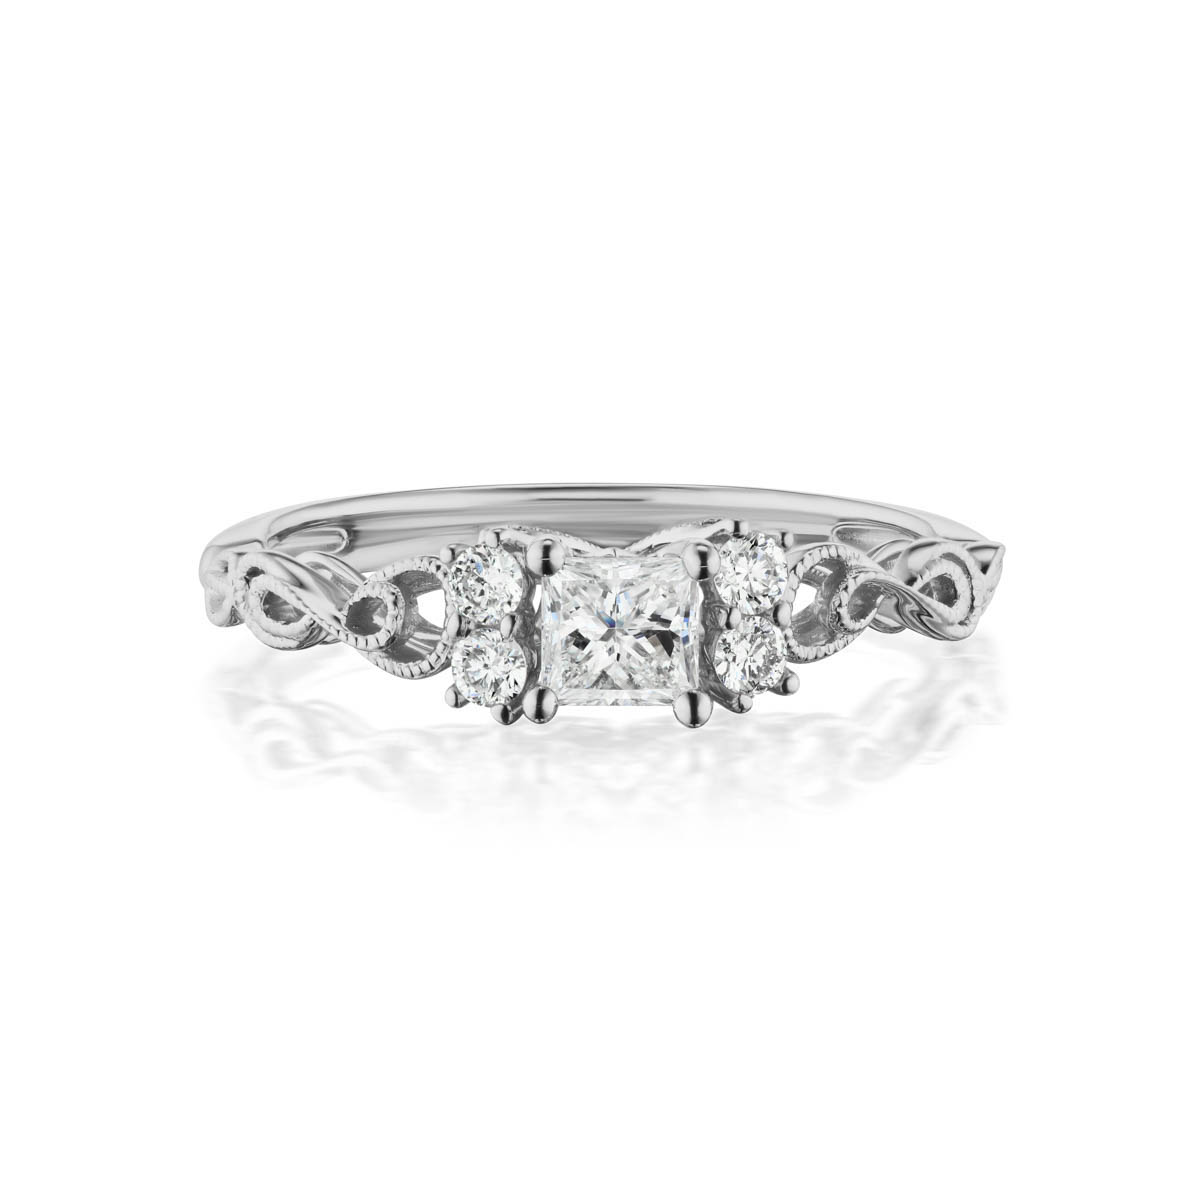 Allure lab diamond ring; 14kt white gold